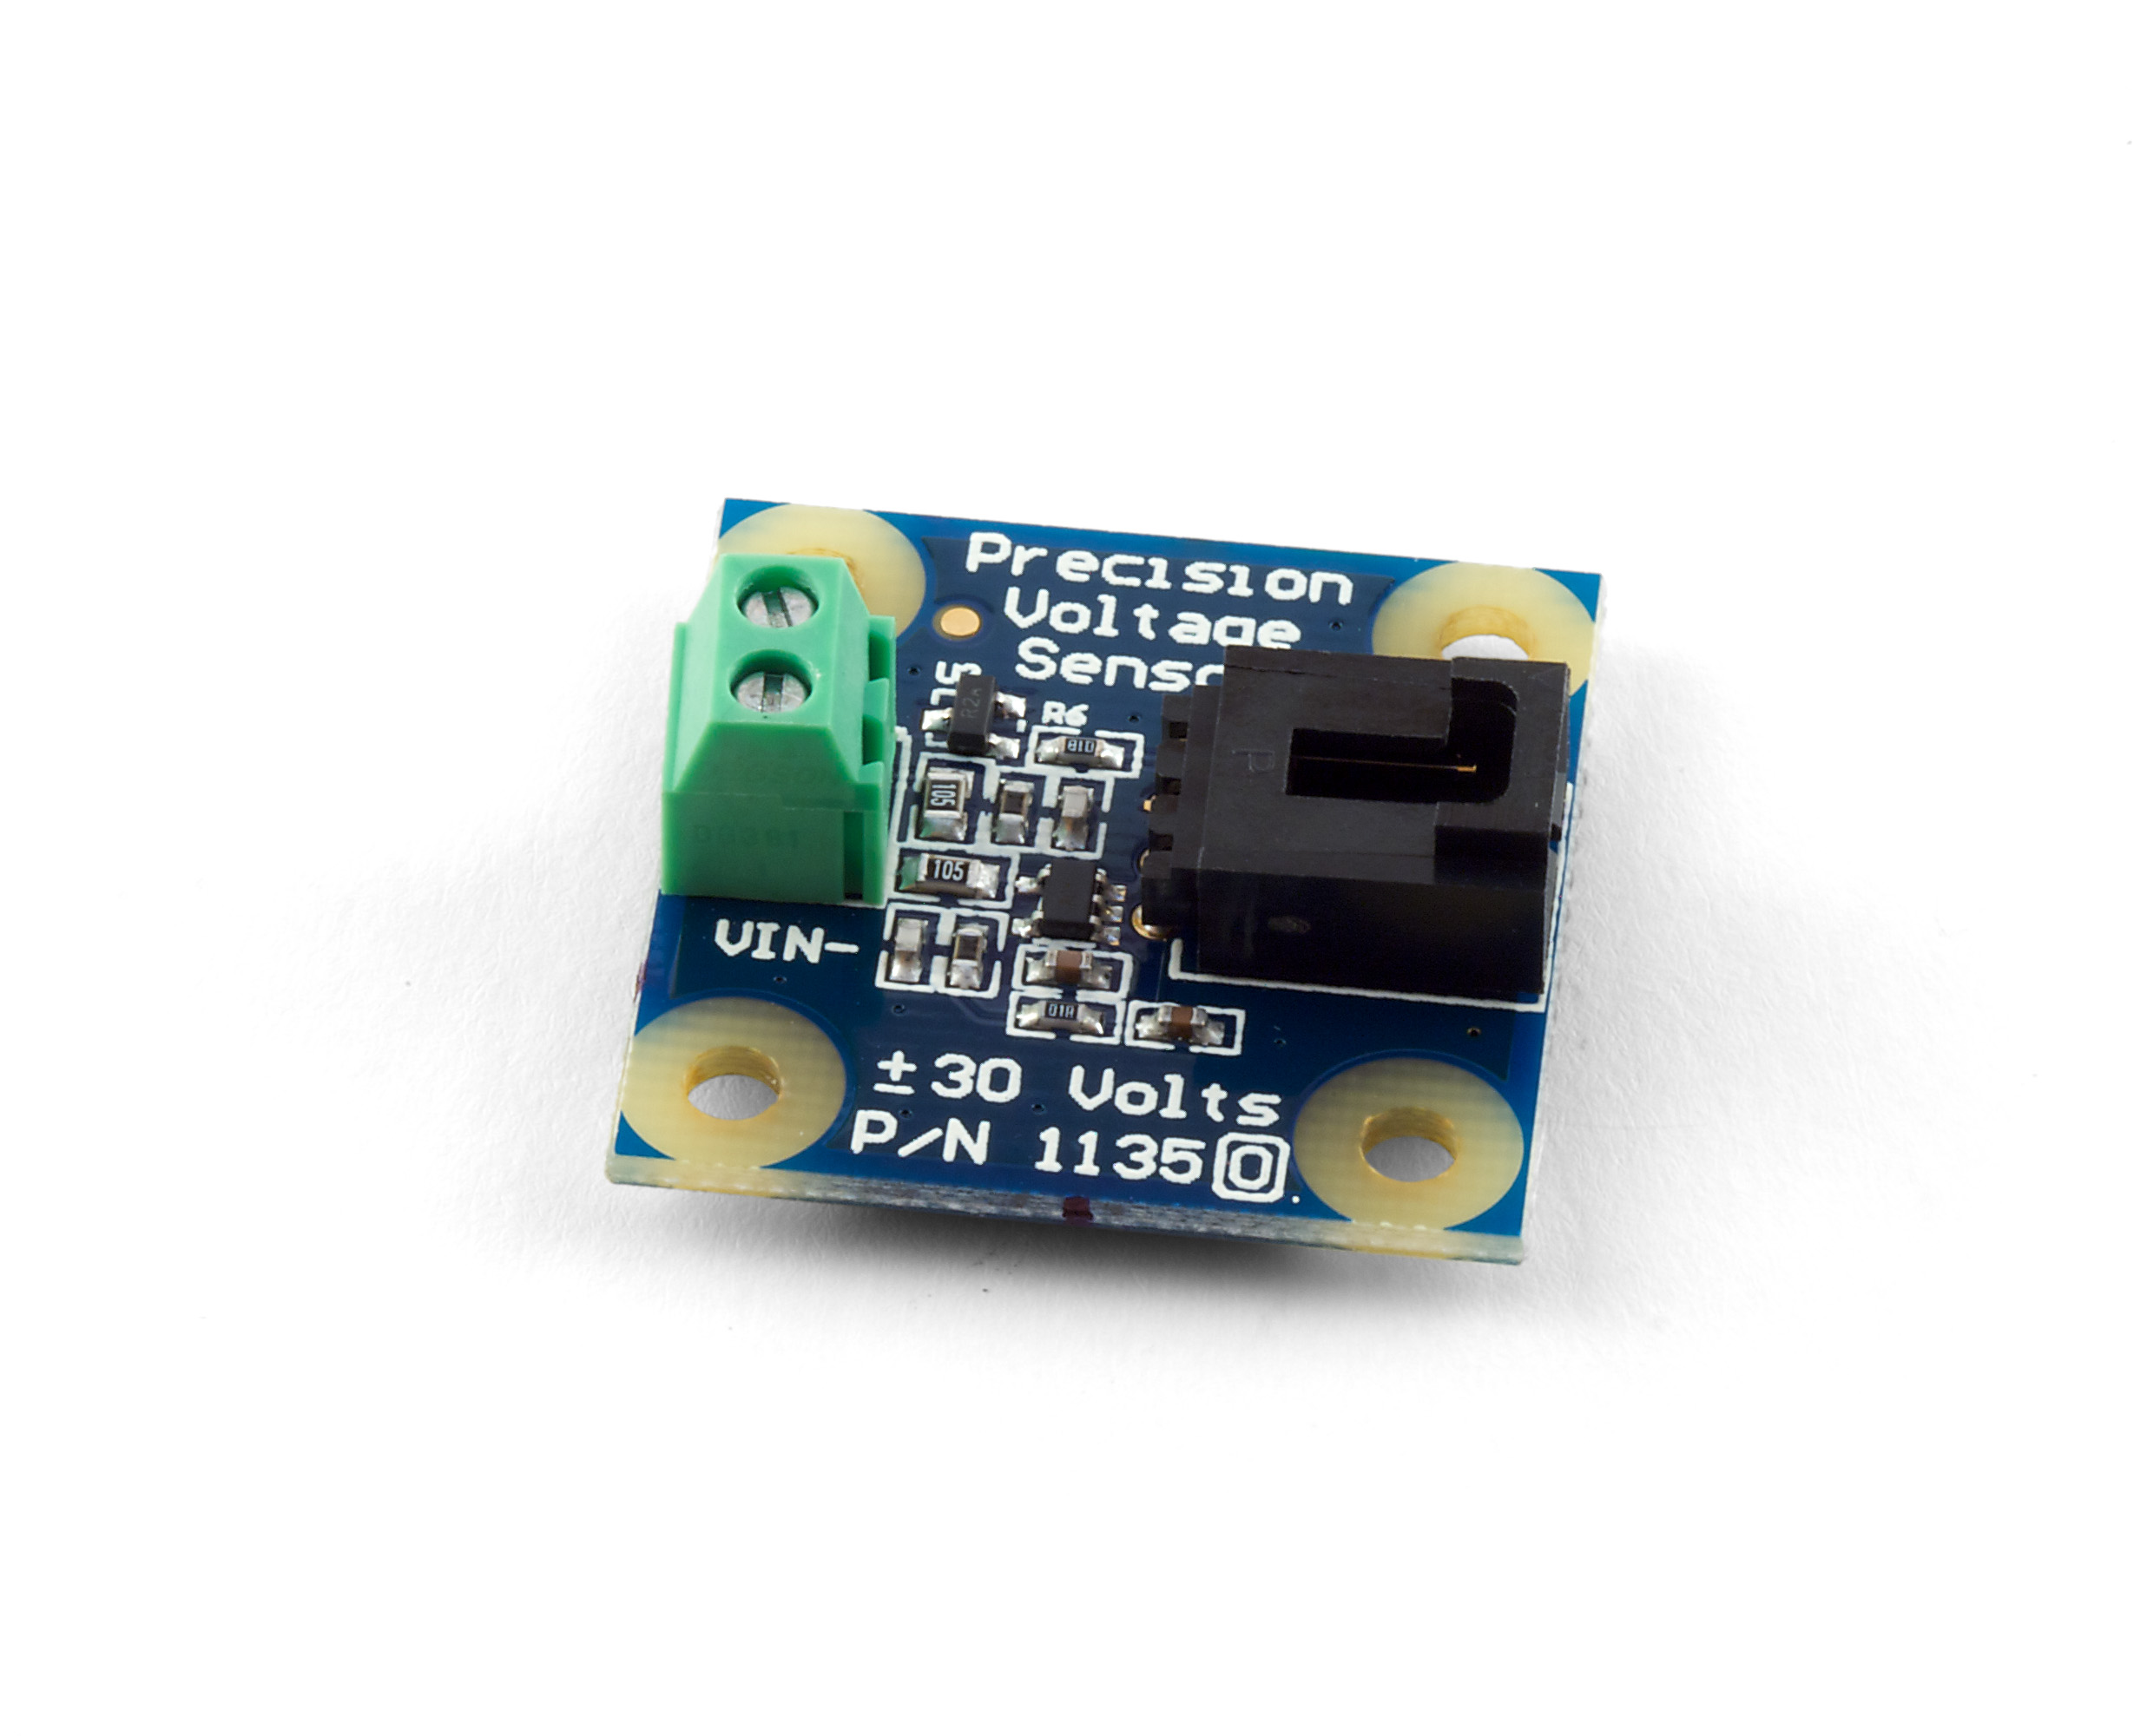 Precision Voltage Sensor - 1135_0 at Phidgets